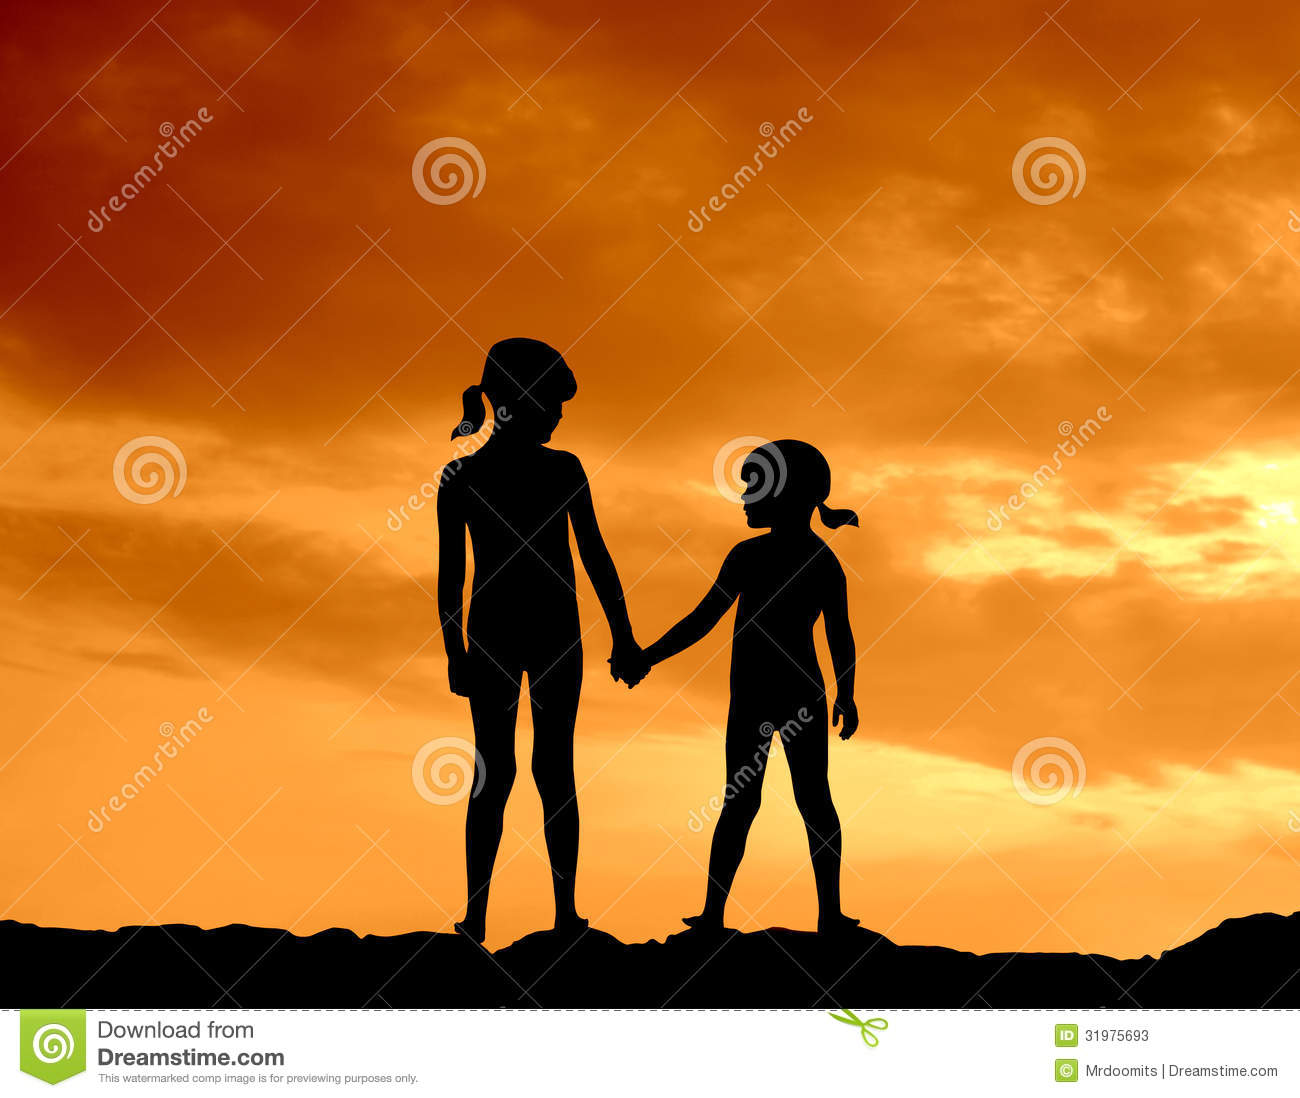 Silhouette Of Two Girls Holding Hands Against A Beautiful Sunset Two Sisters Holding Hands